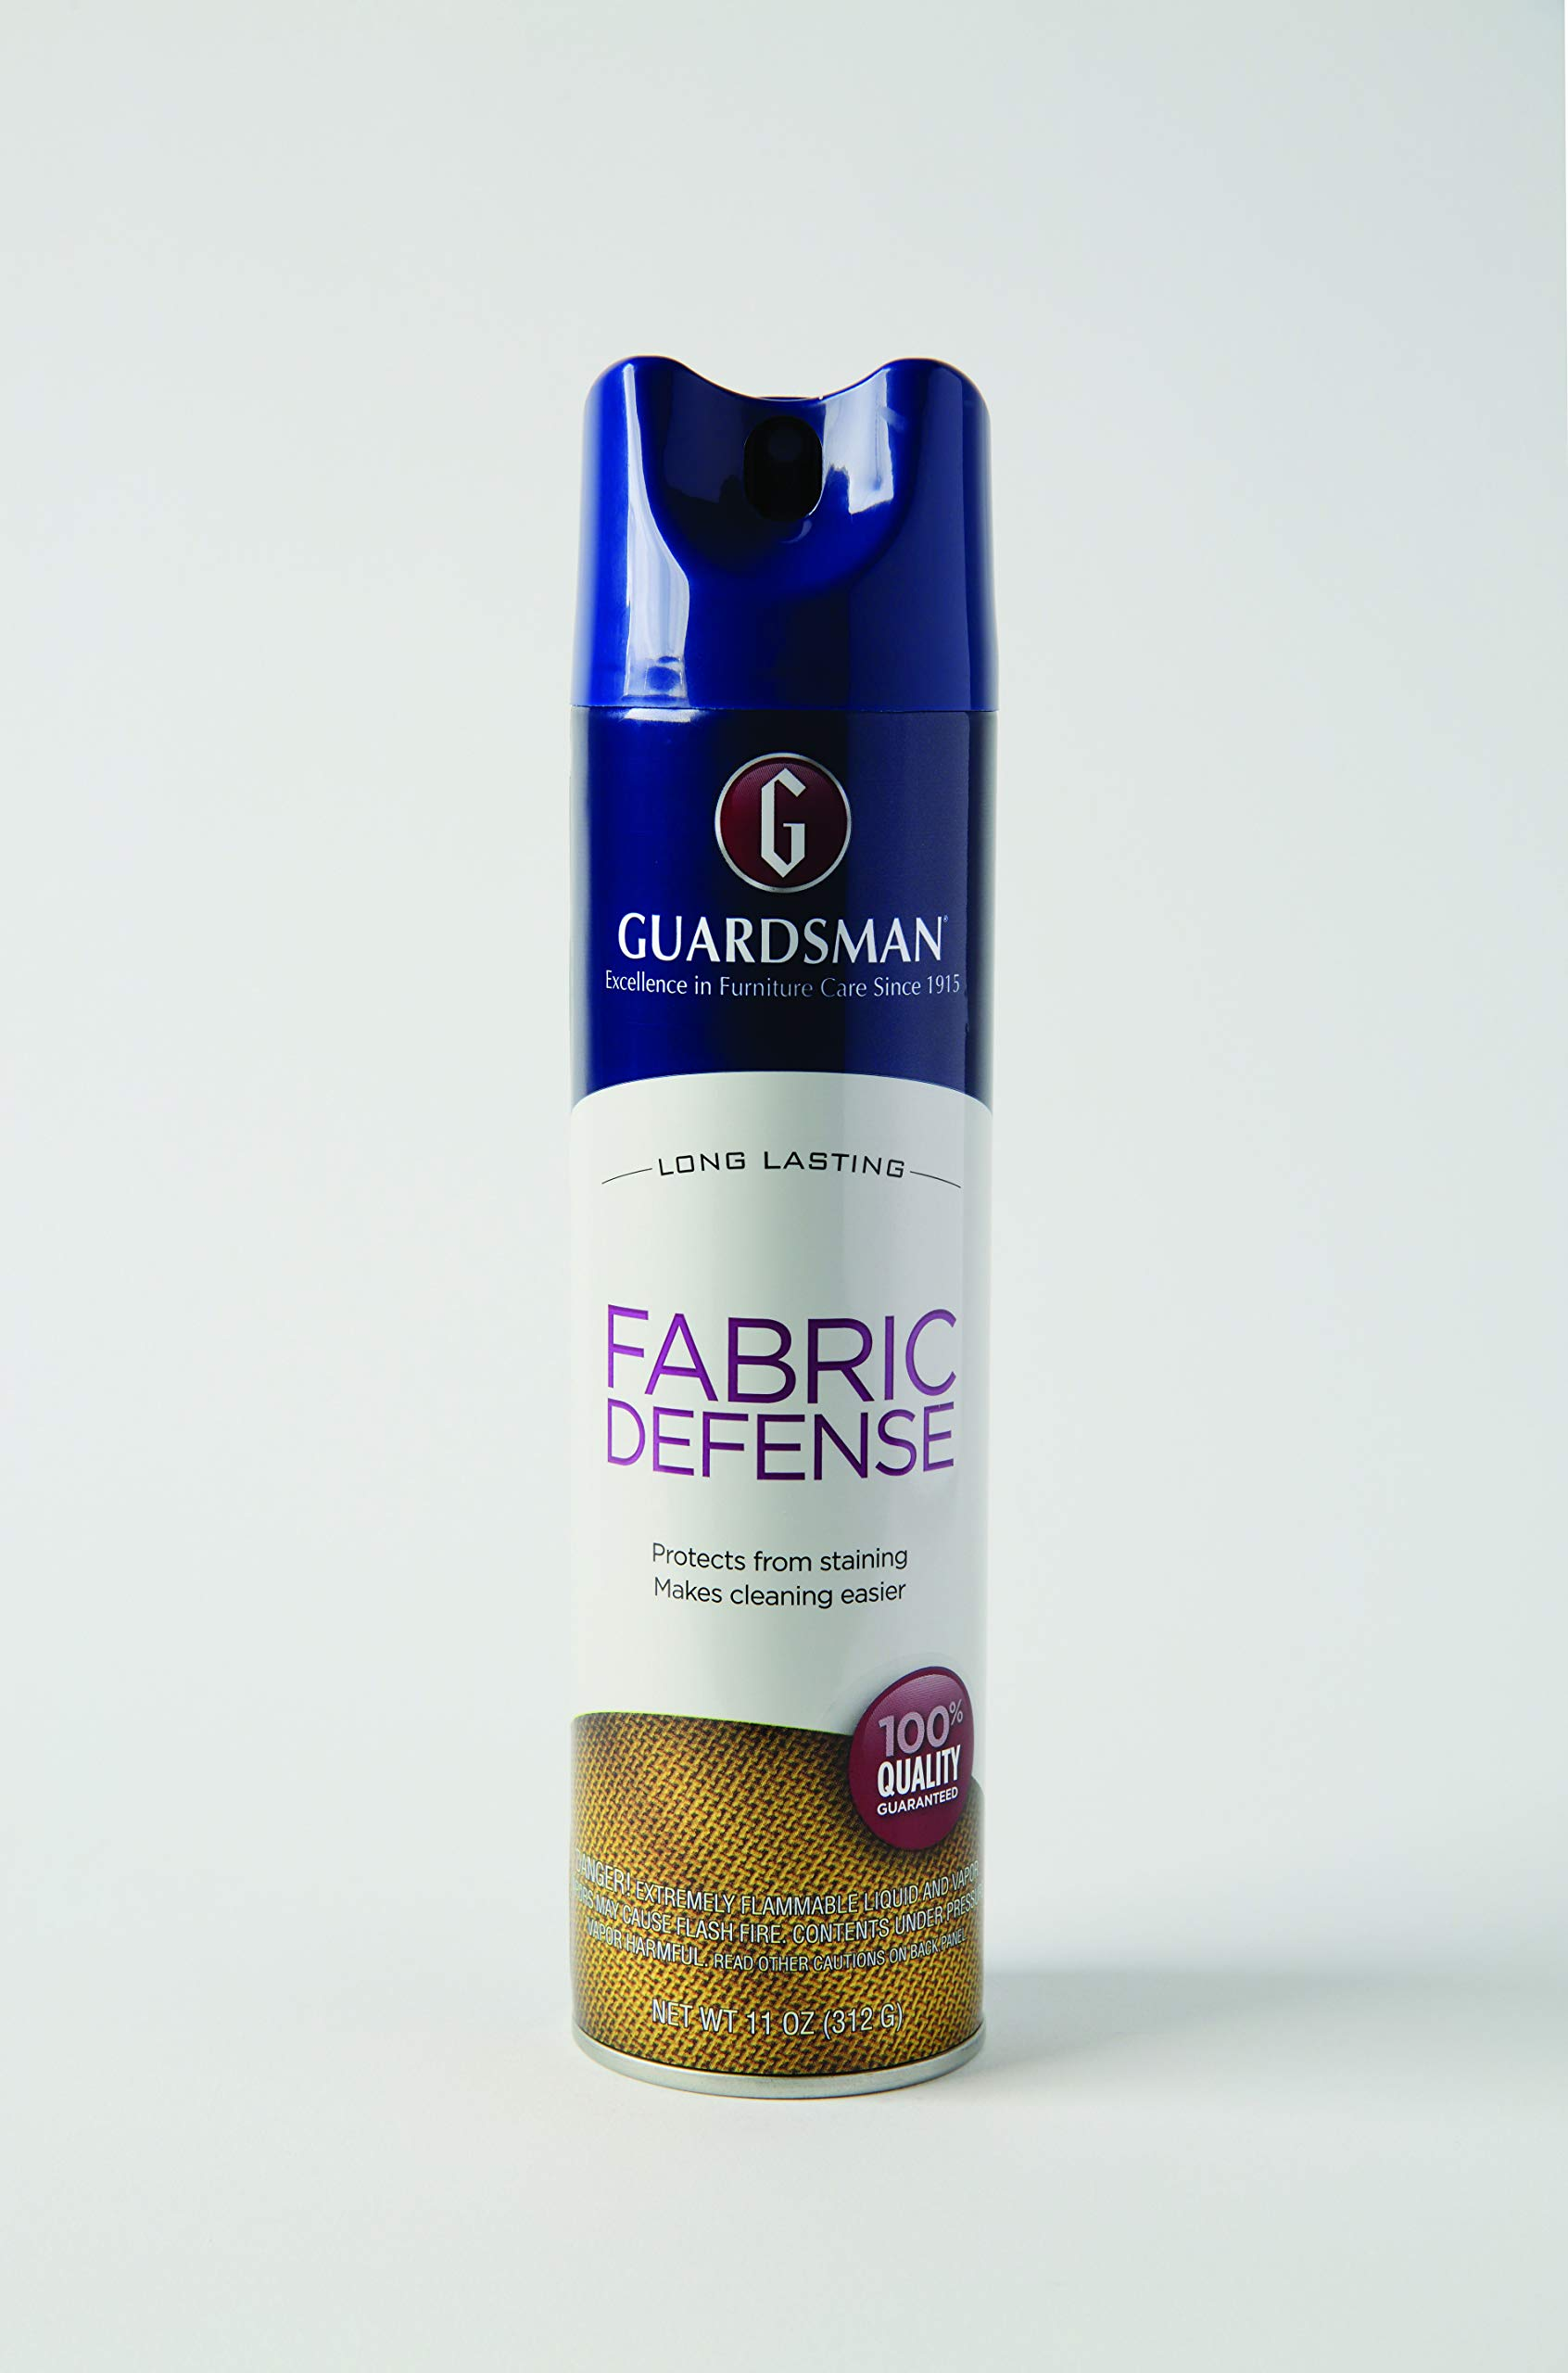 Guardsman Fabric Defense & Upholstery Protector Blocks Stains and Repels Liquid, Use on Microfiber, Rugs, Carpeting, Fabric Apparel, Easy Clean, Odorless, No Chemical Cleaner 11 Oz 460900